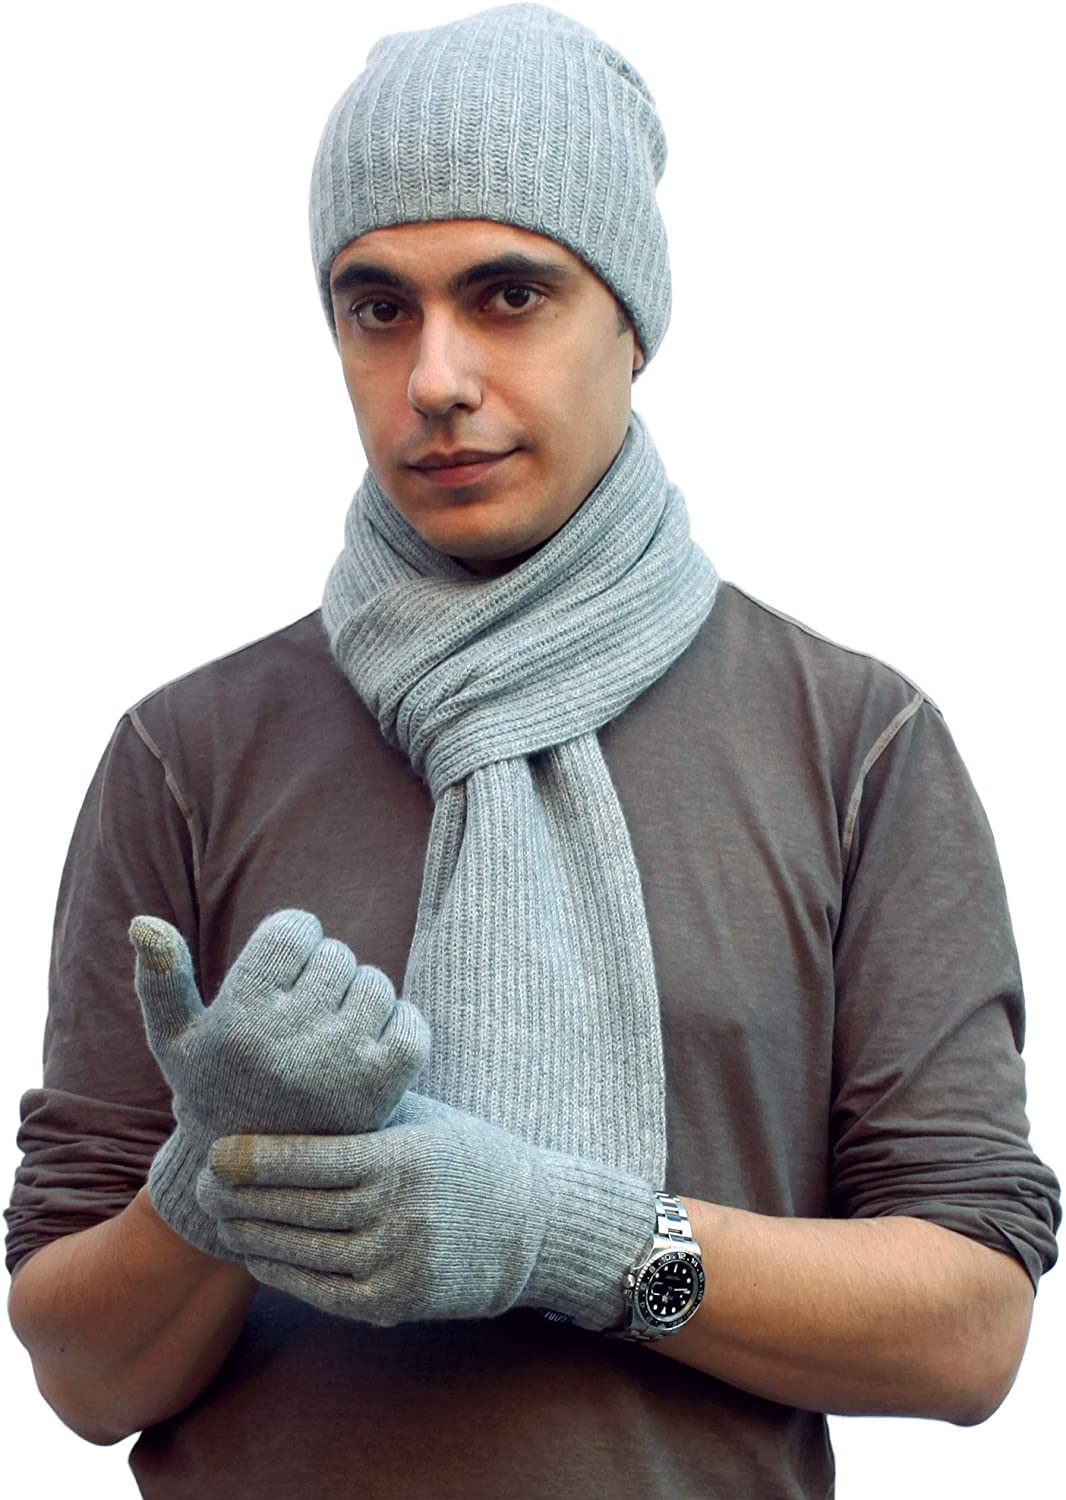 Men's Hat and Scarf Set 100% Cashmere for Winter Extra Warm